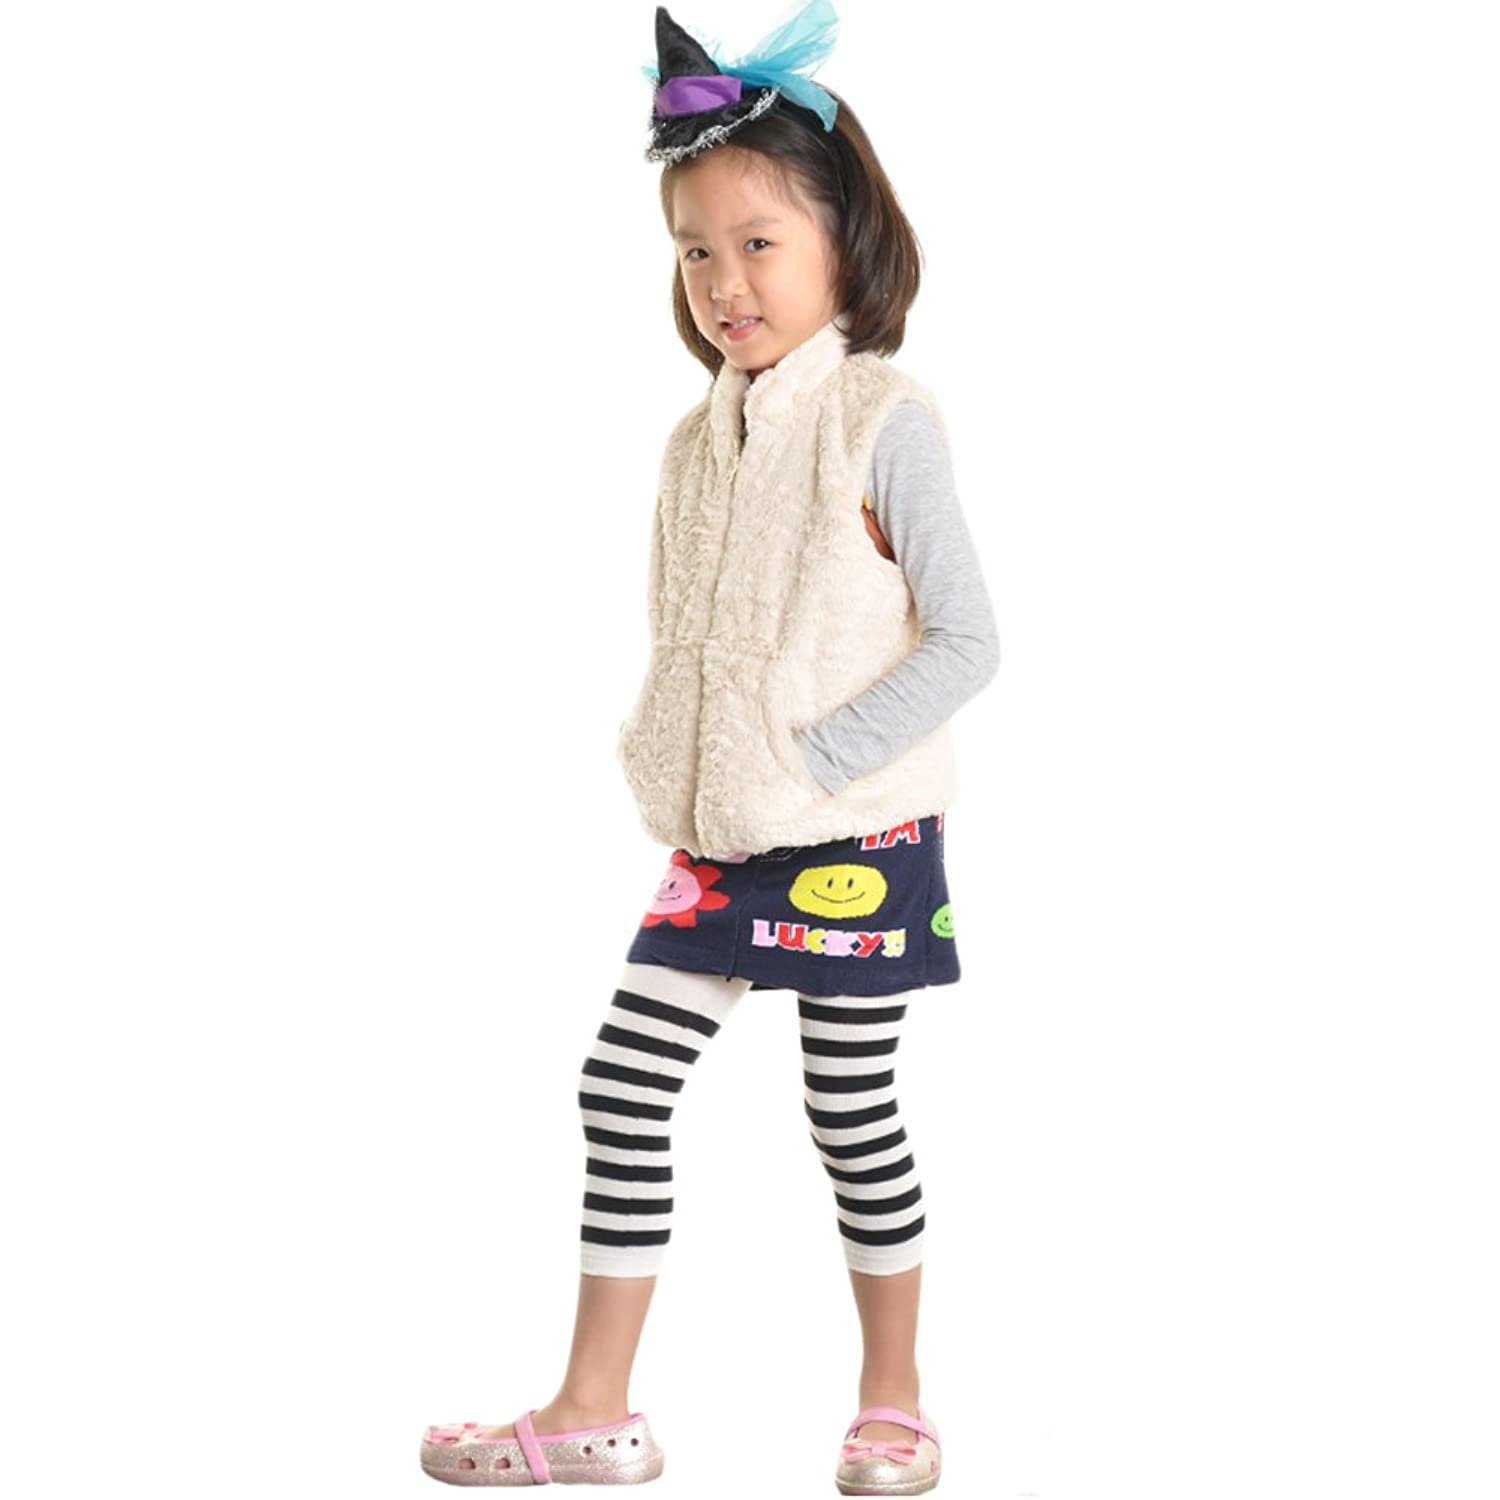 c2c367aad3231 Angelina Girls Sweater Tights with Skirt